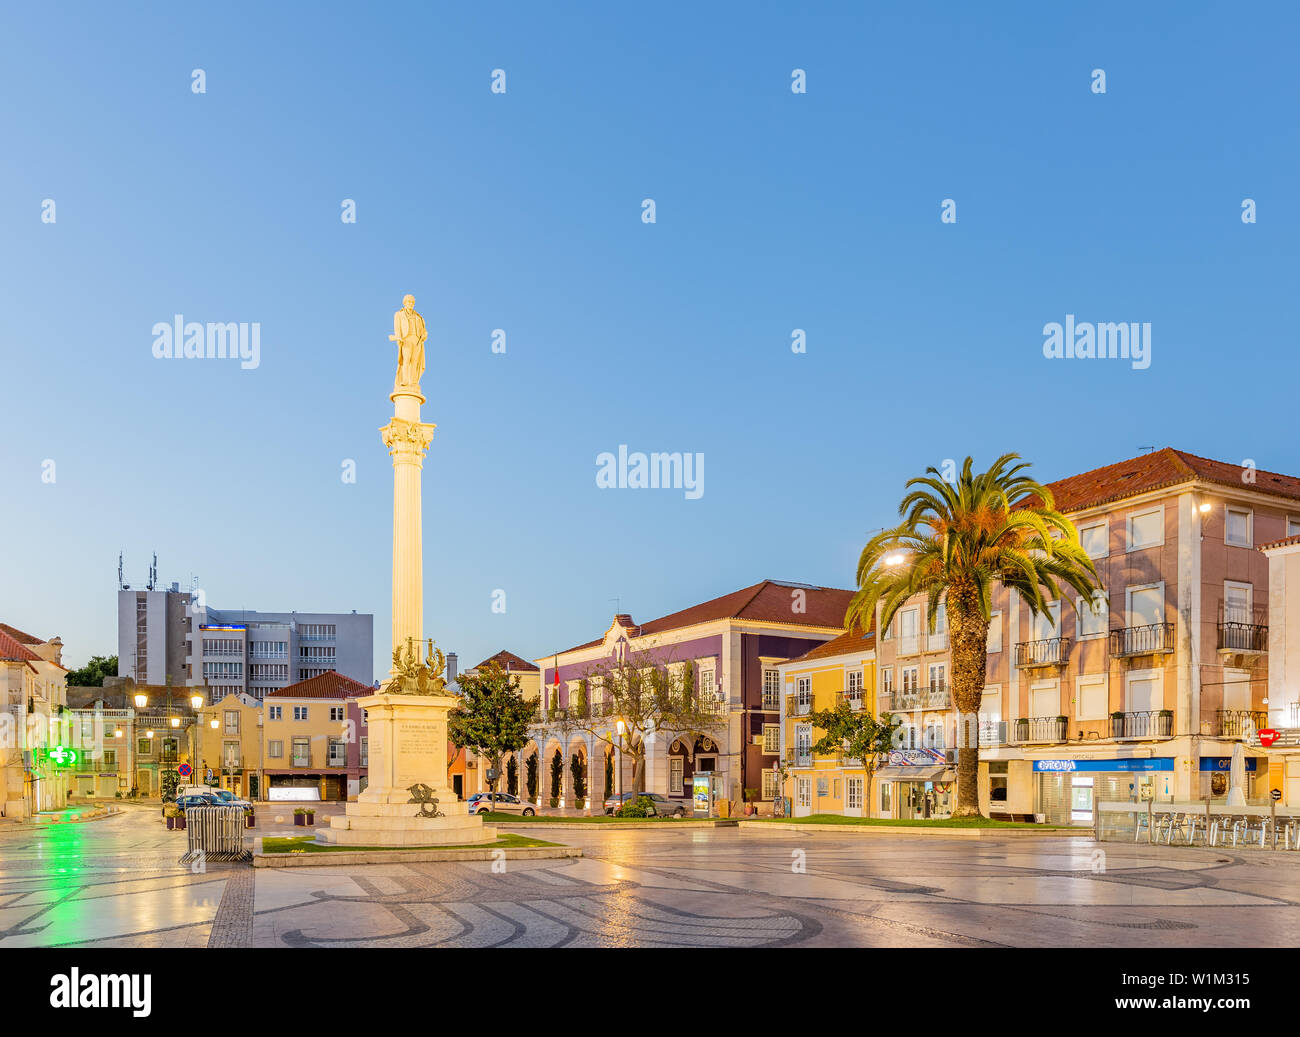 Praça de Bocage, Setúbal downtown, Portugal Stock Photo